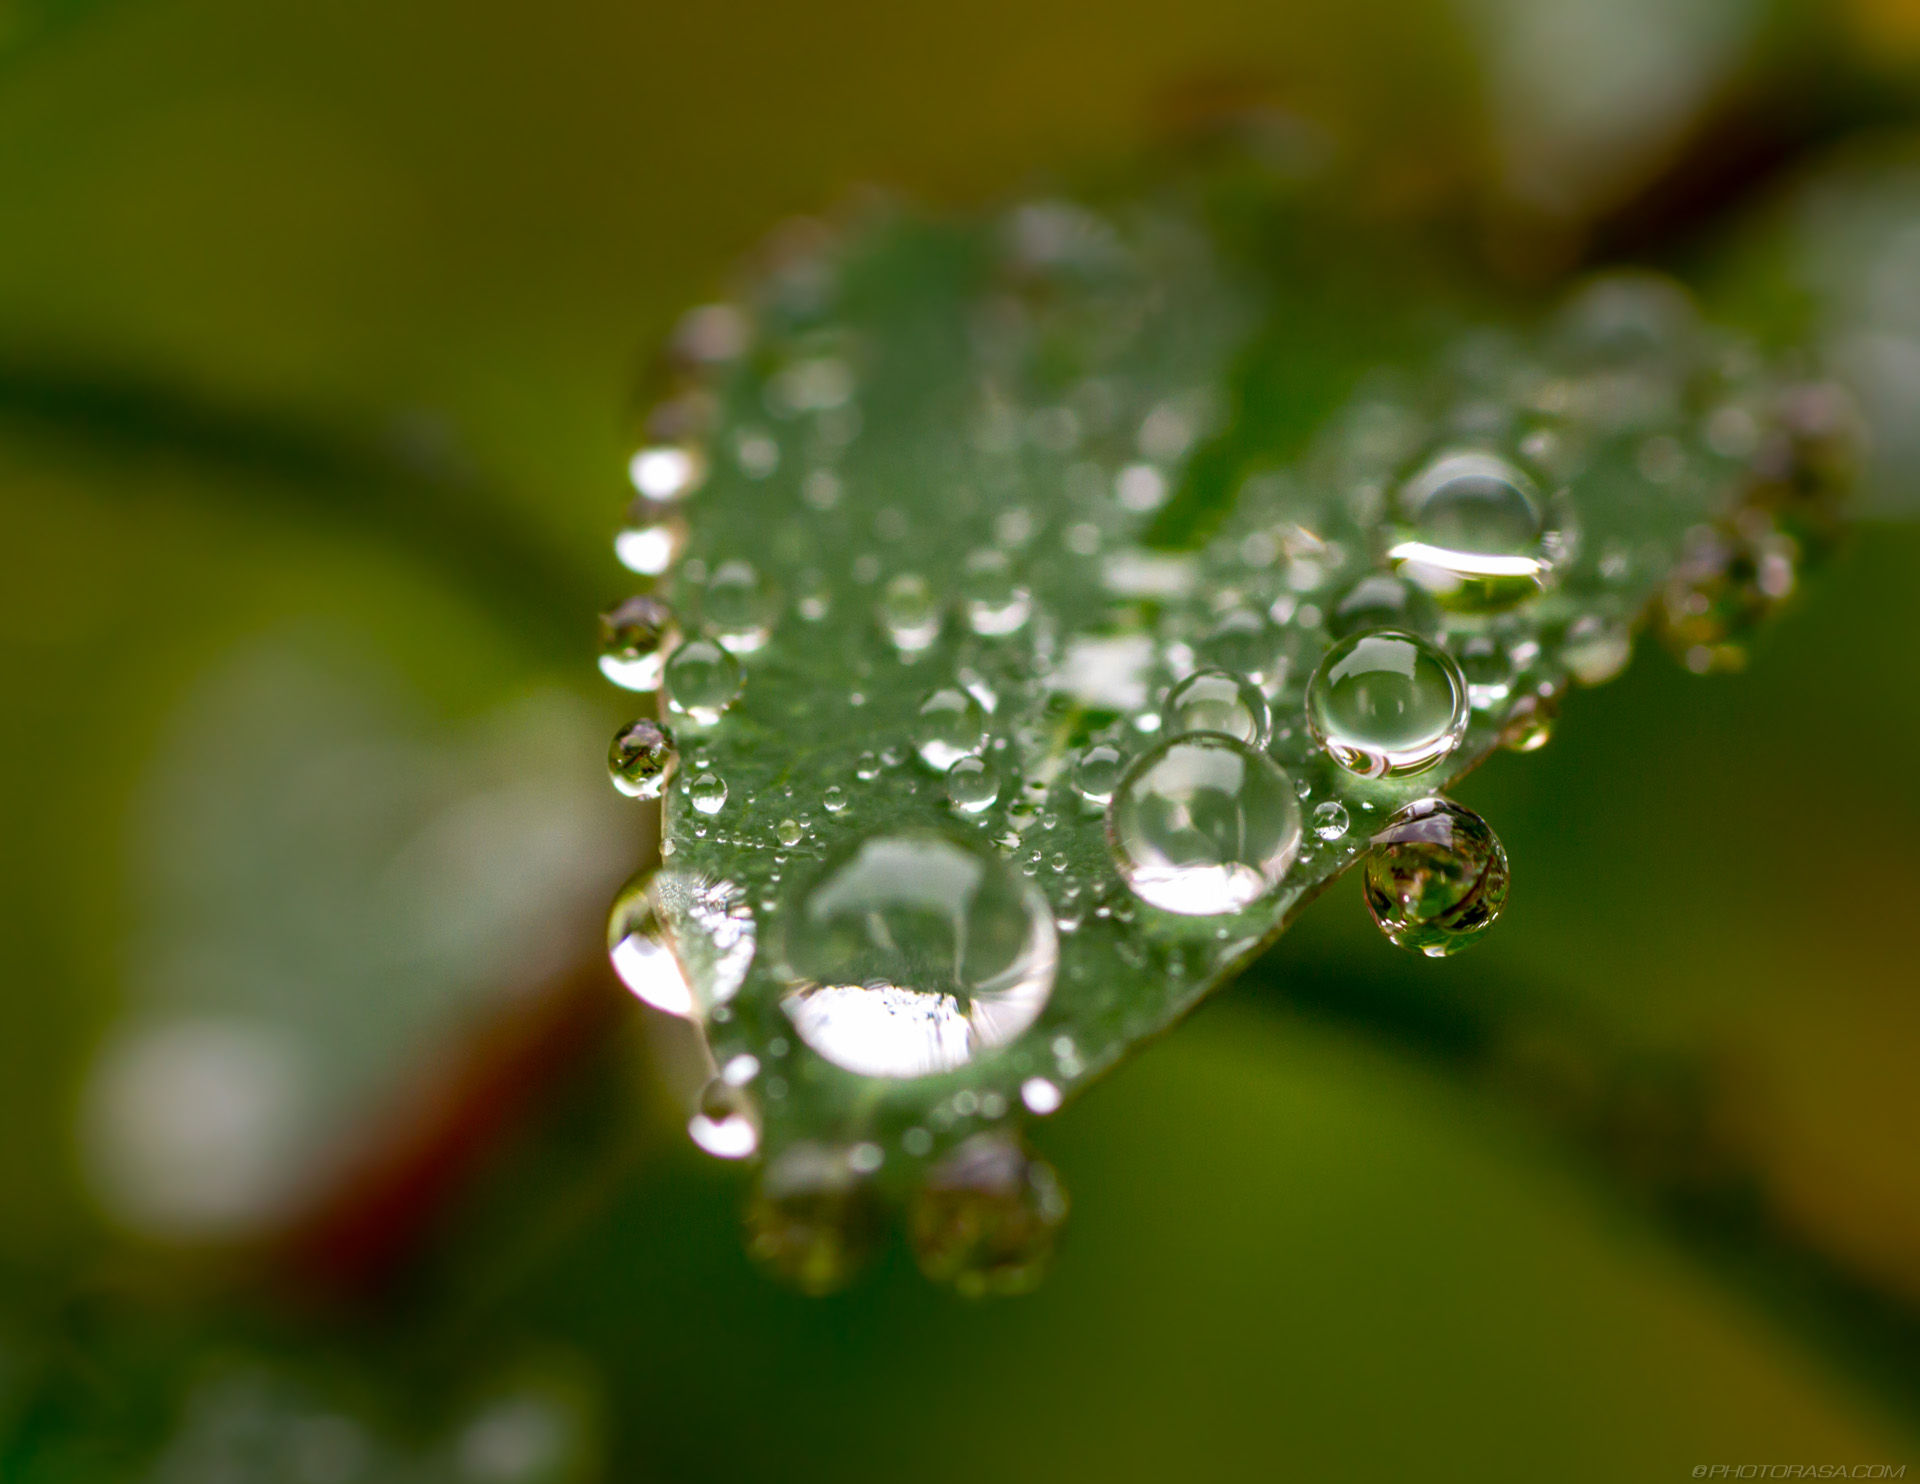 http://photorasa.com/dewdrops-tiny-leaves/dewdrops-on-edge-and-face-of-leaf/